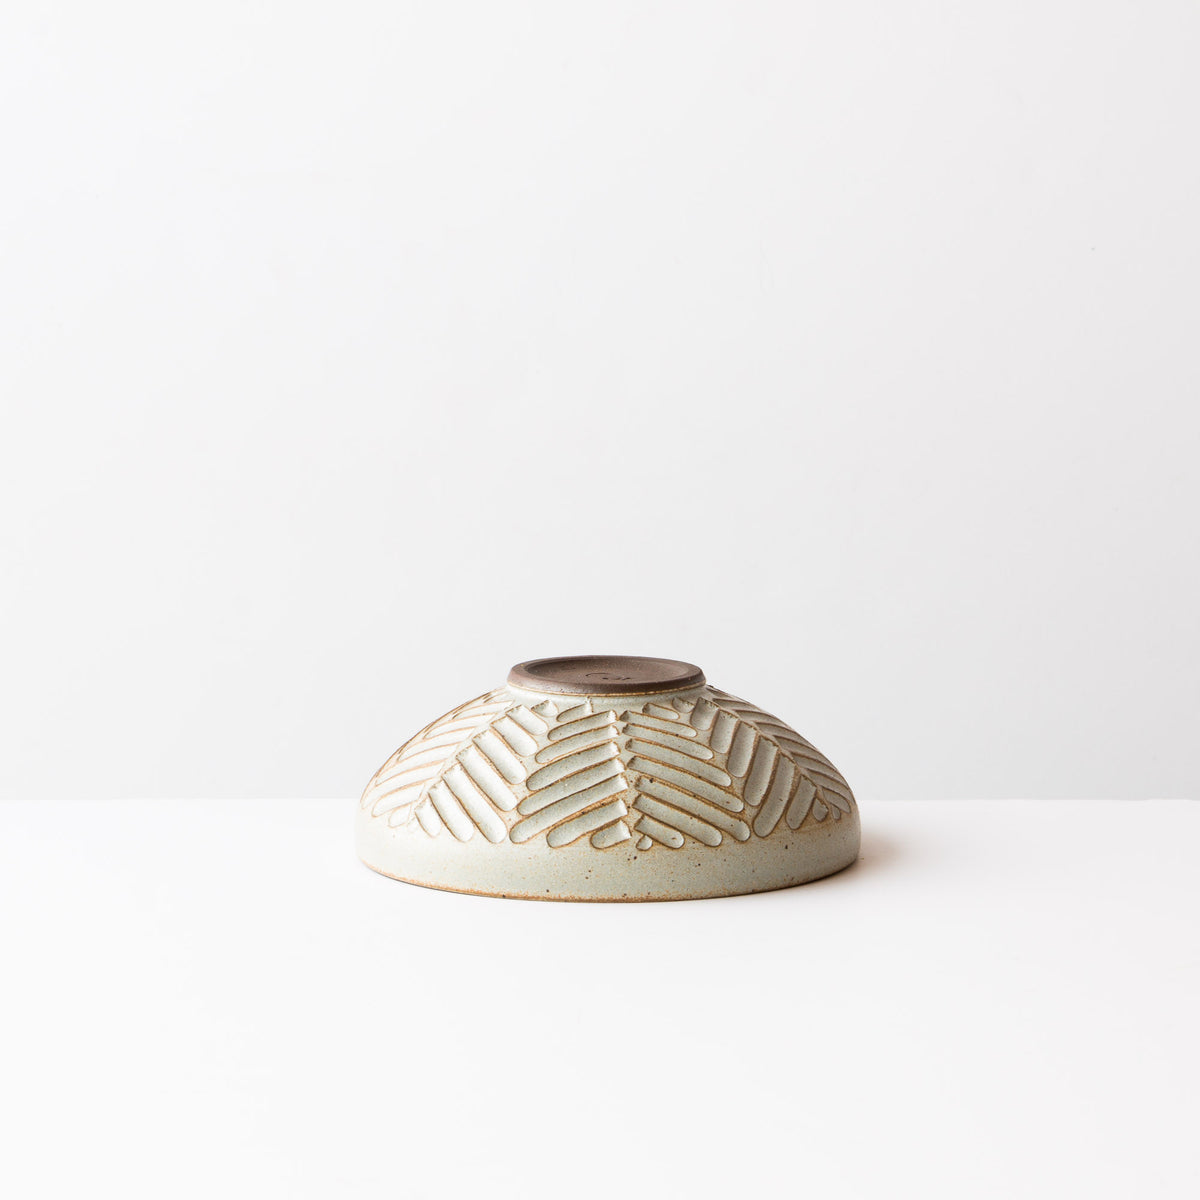 Side View - Greige Colour - Small Hand Thrown Ceramic Bowl - Handmade in Canada - Chic & Basta